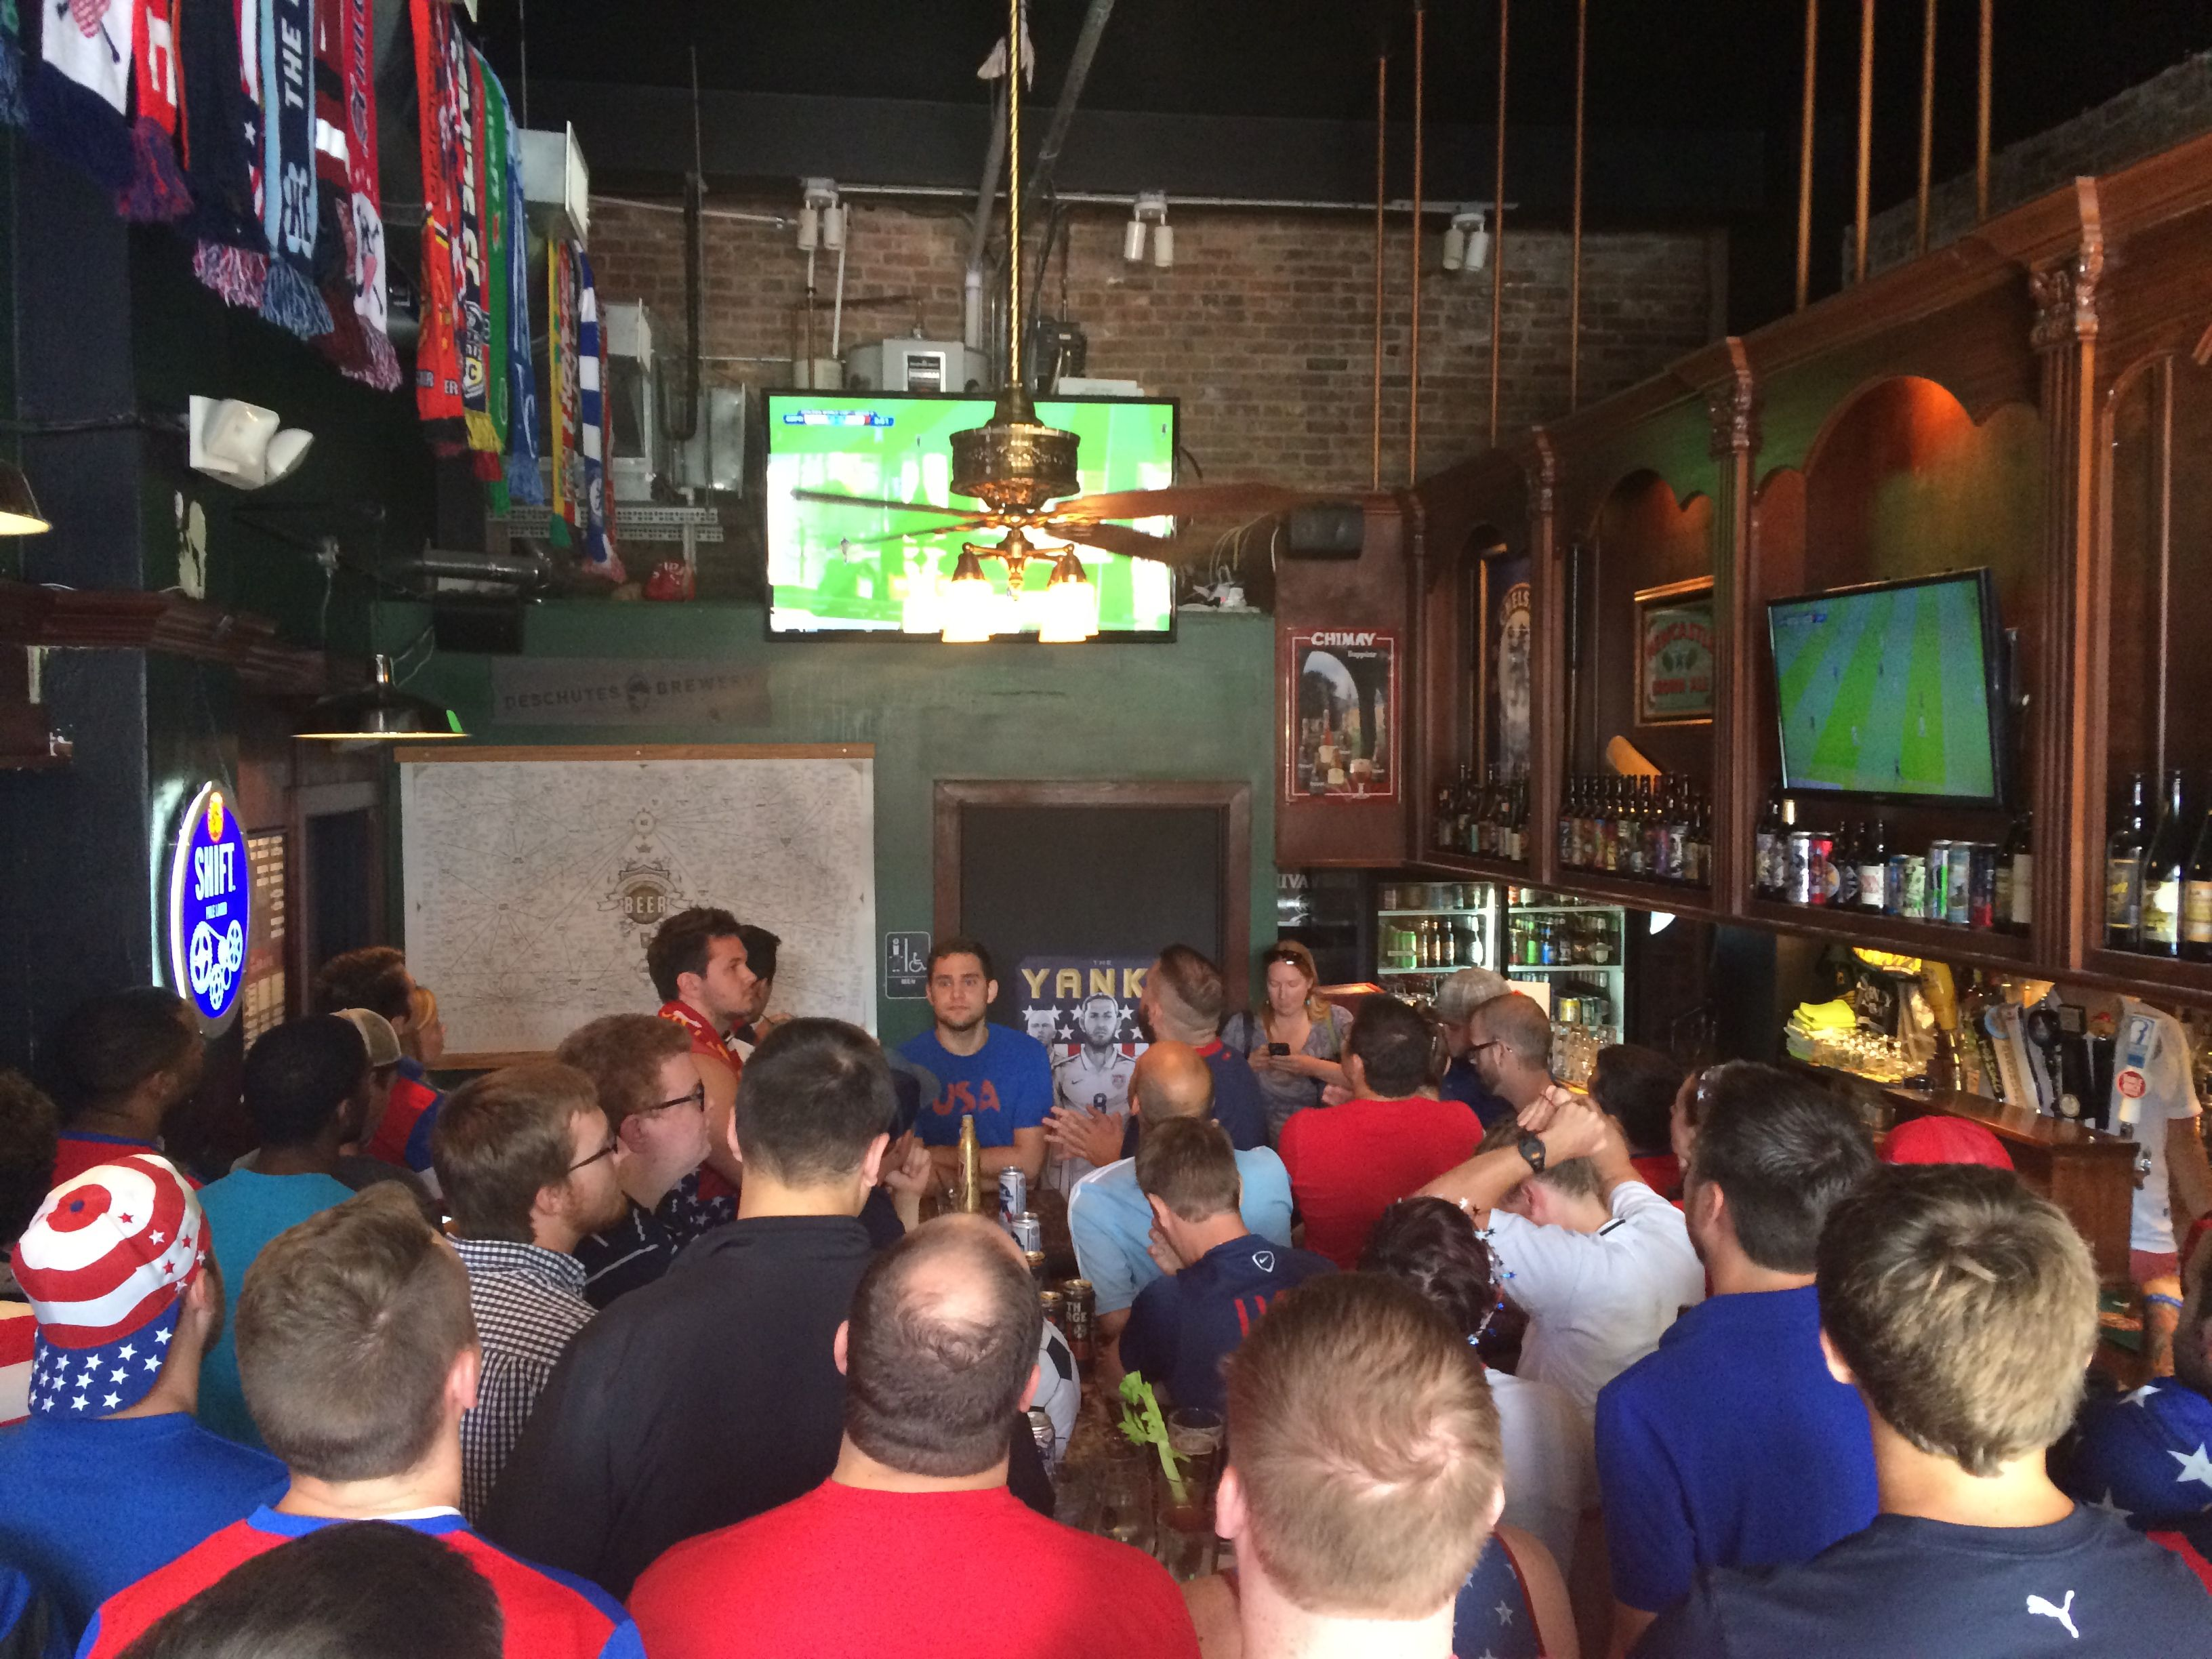 Skinny Slim S Pub In Downtown Springfield Is The Hotspot For Catching All The Worldcup Games Downtownsgf Itsalldowntown Downtown Springfield Hot Spot